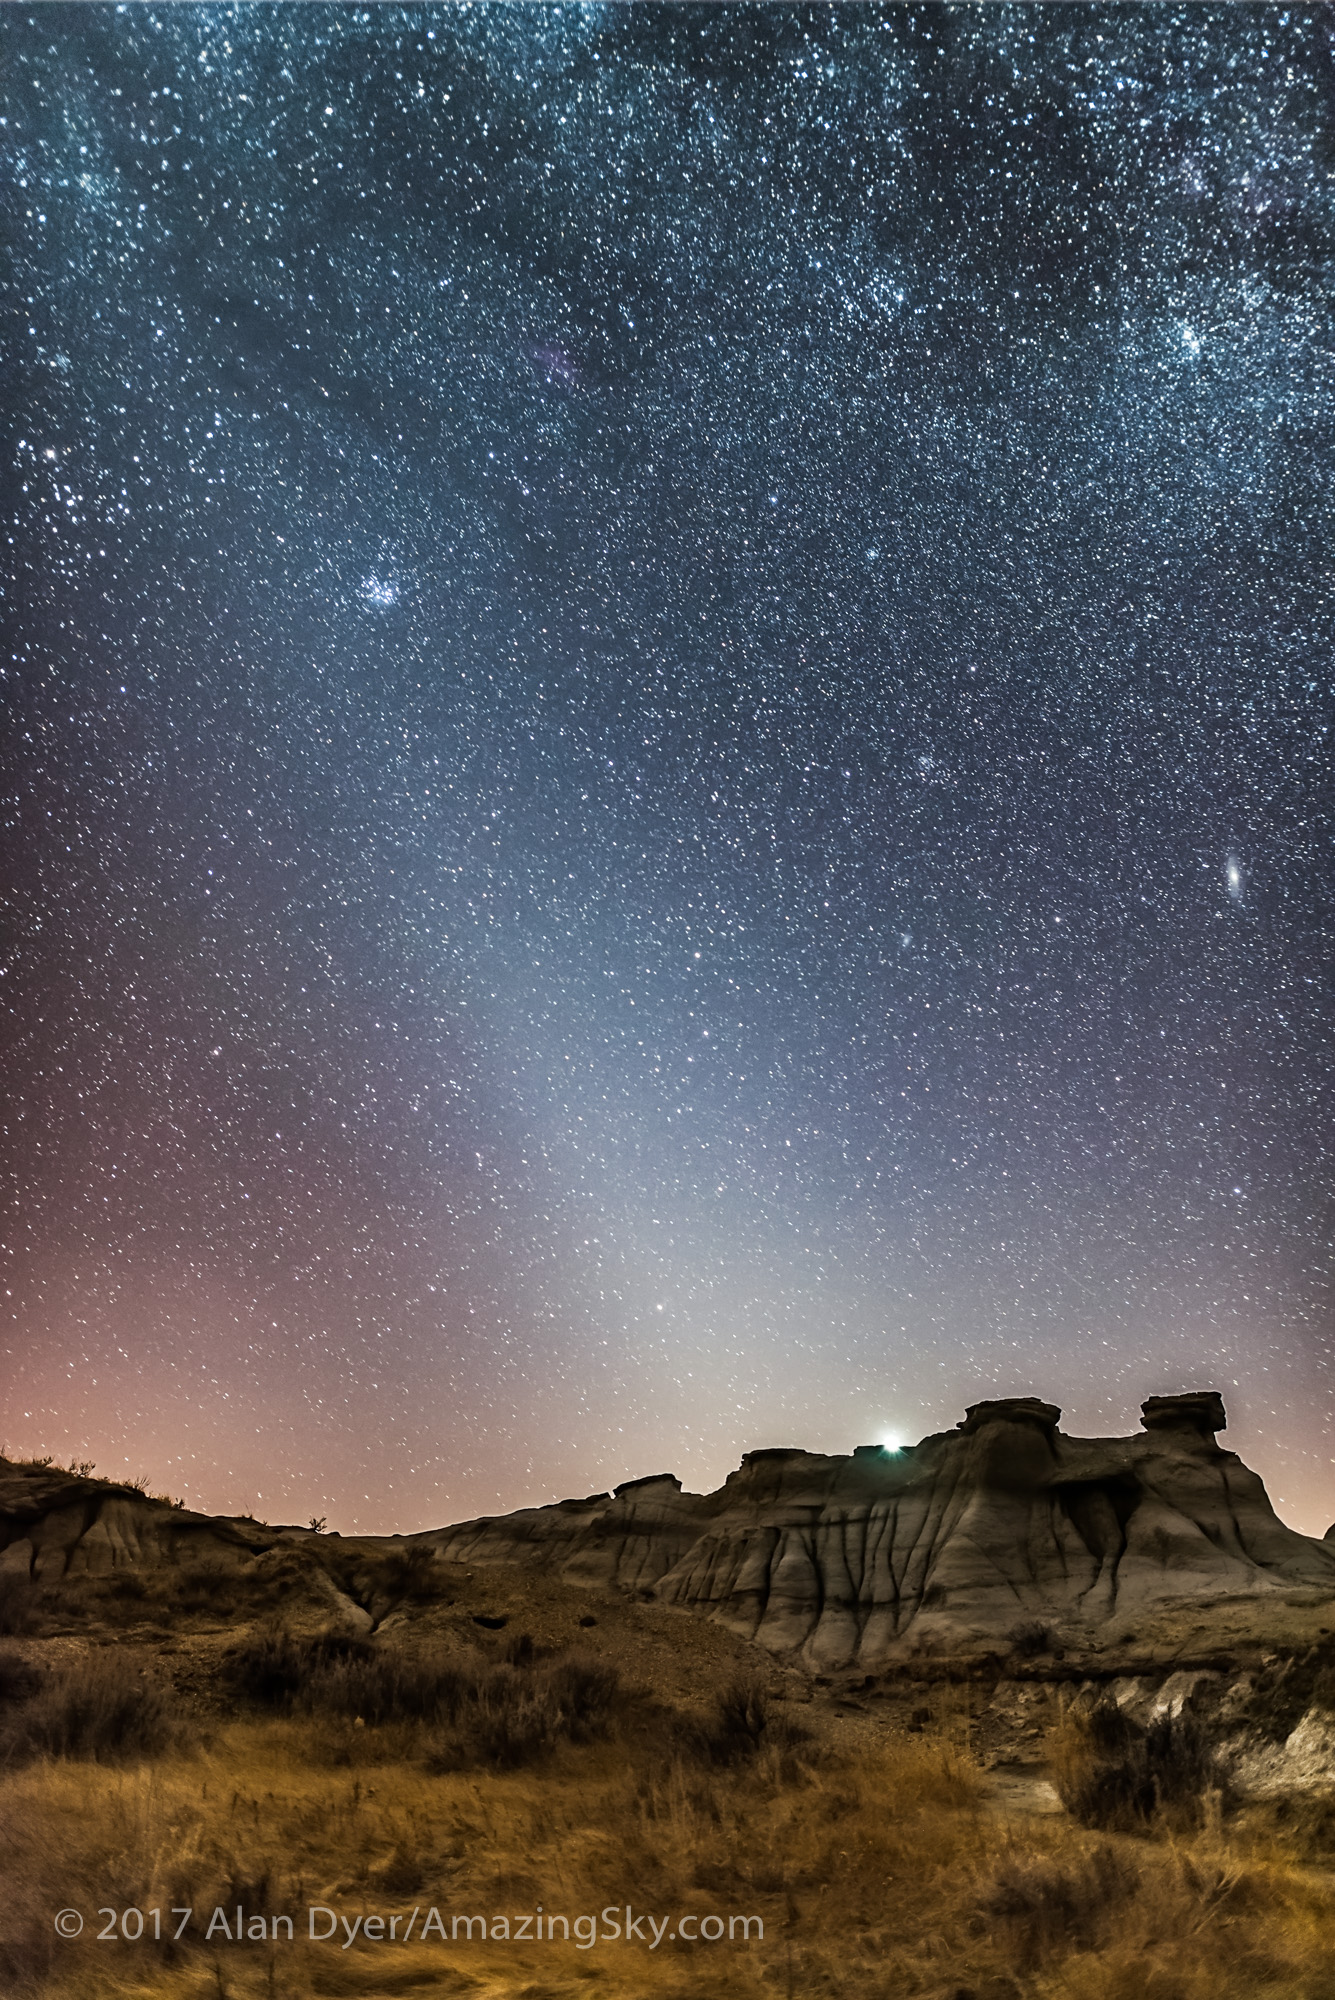 Evening Zodiacal Light at Dinosaur Park